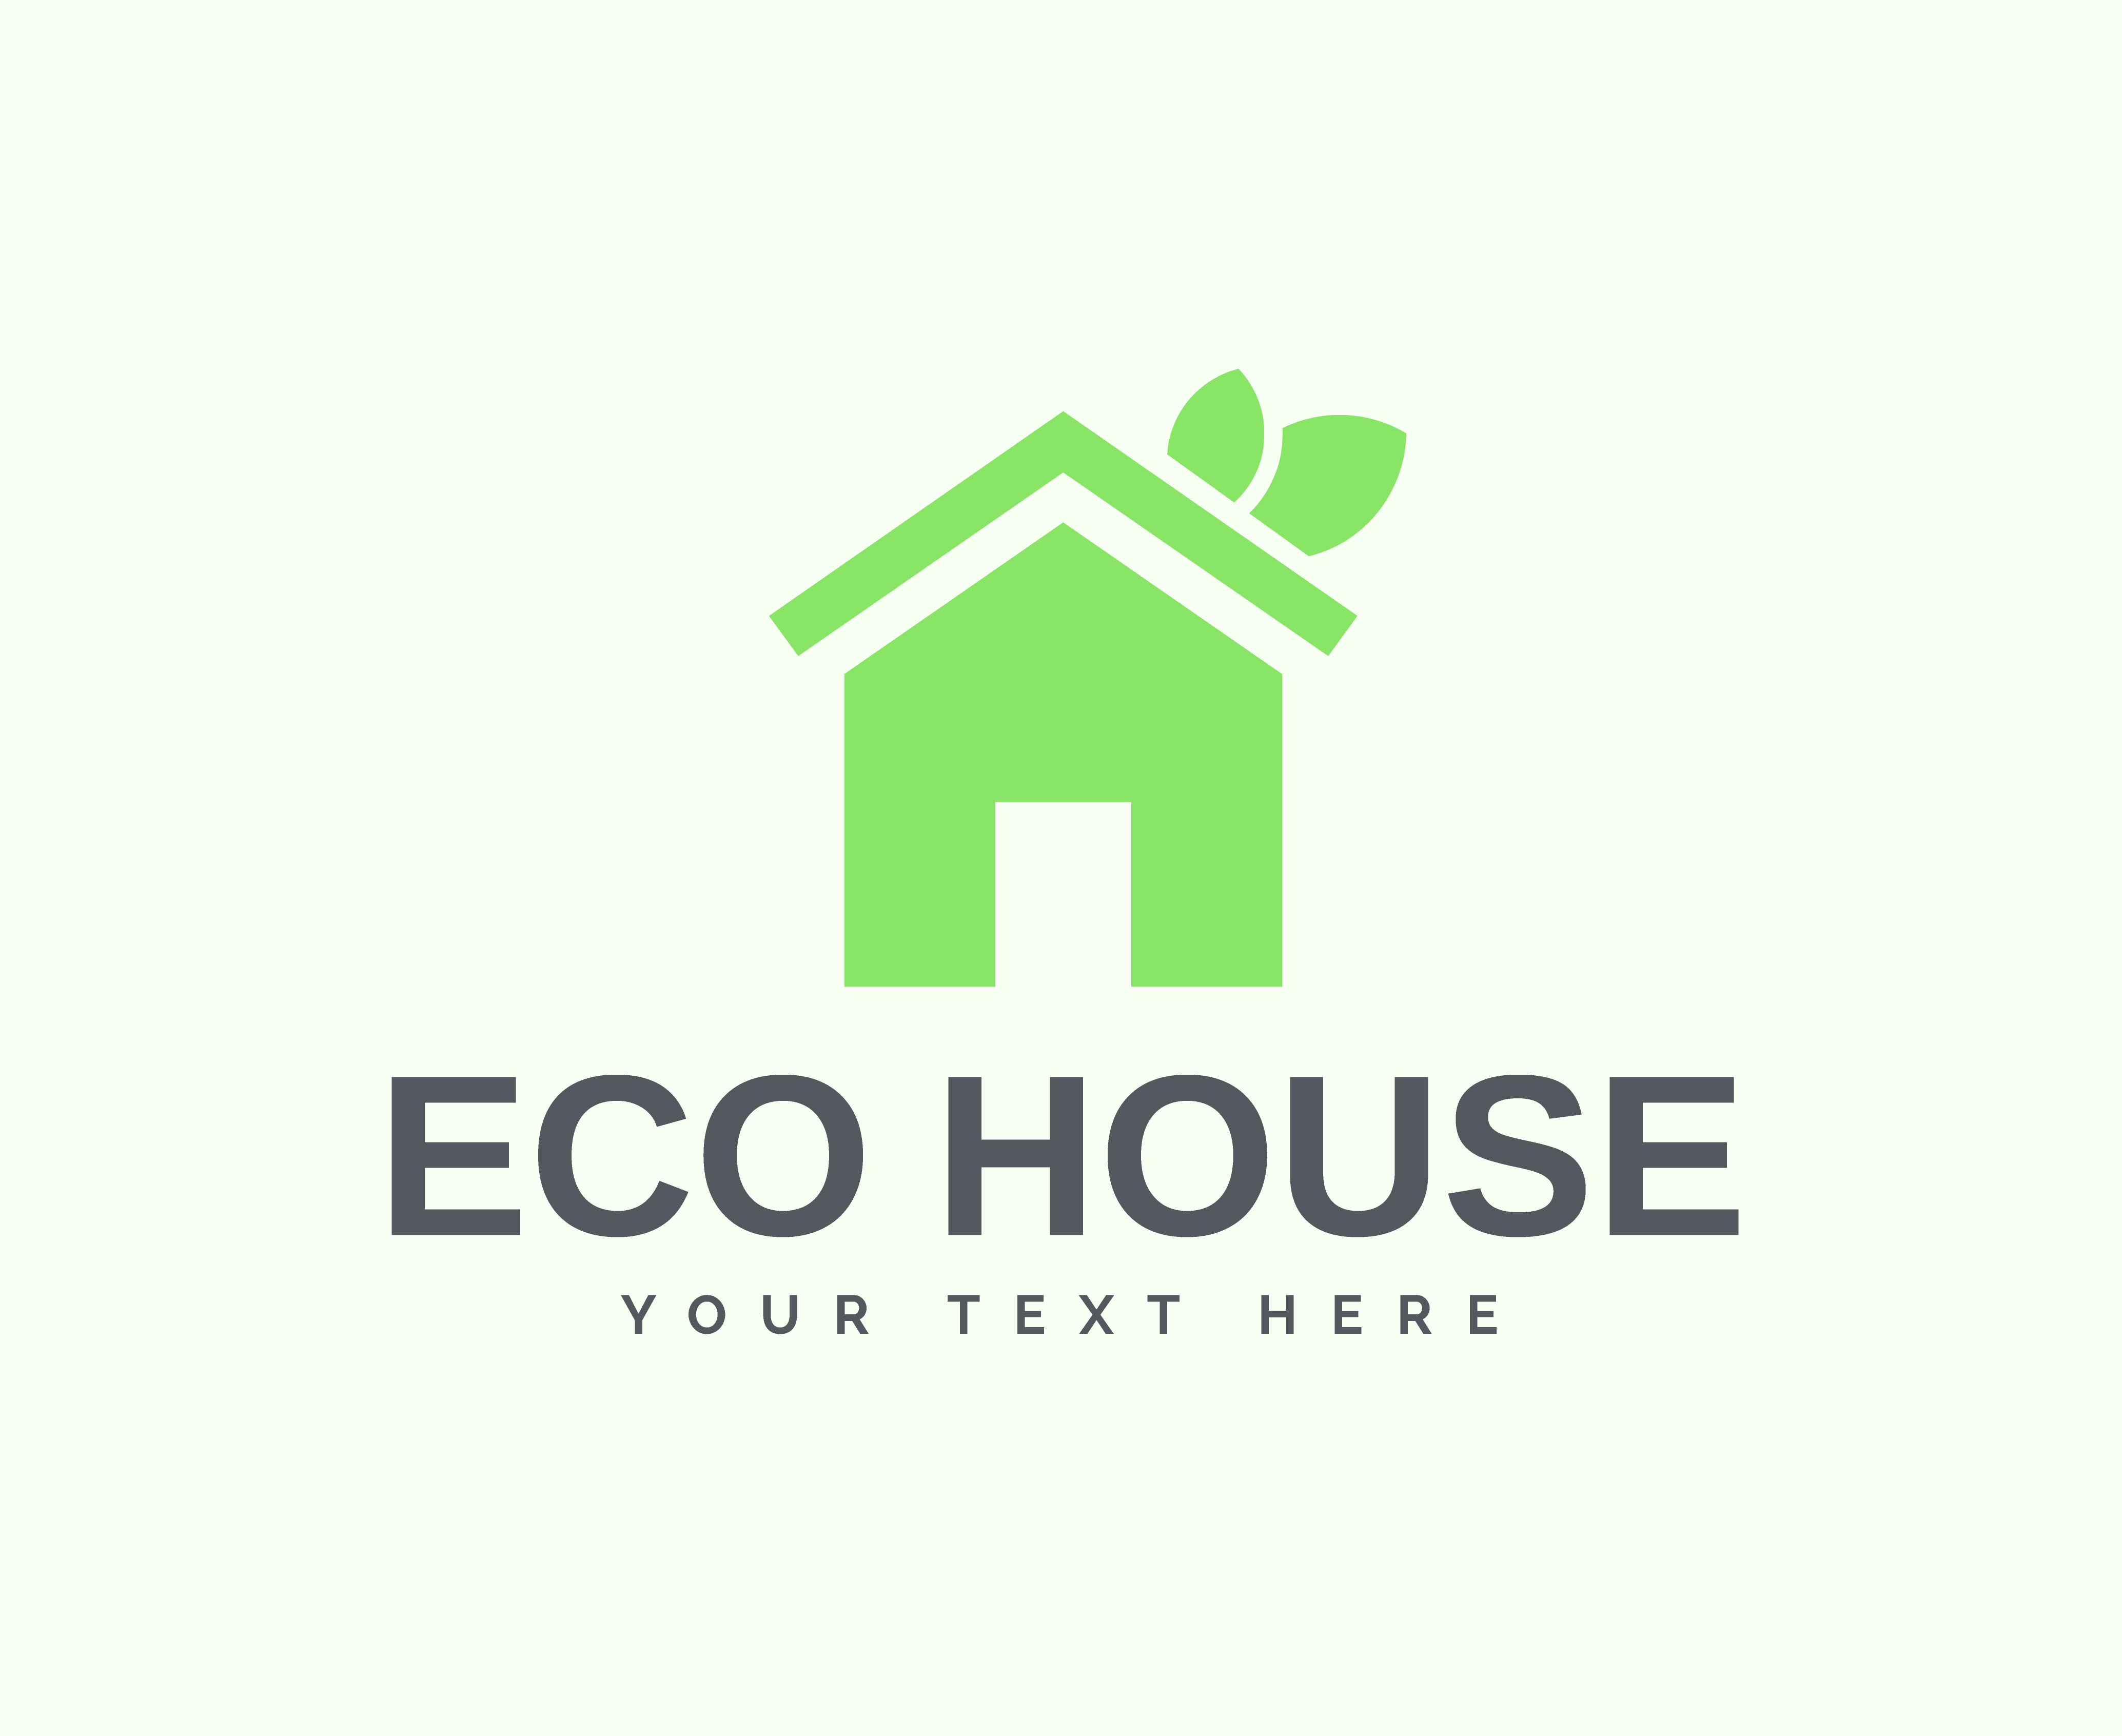 Eco House Vector Download